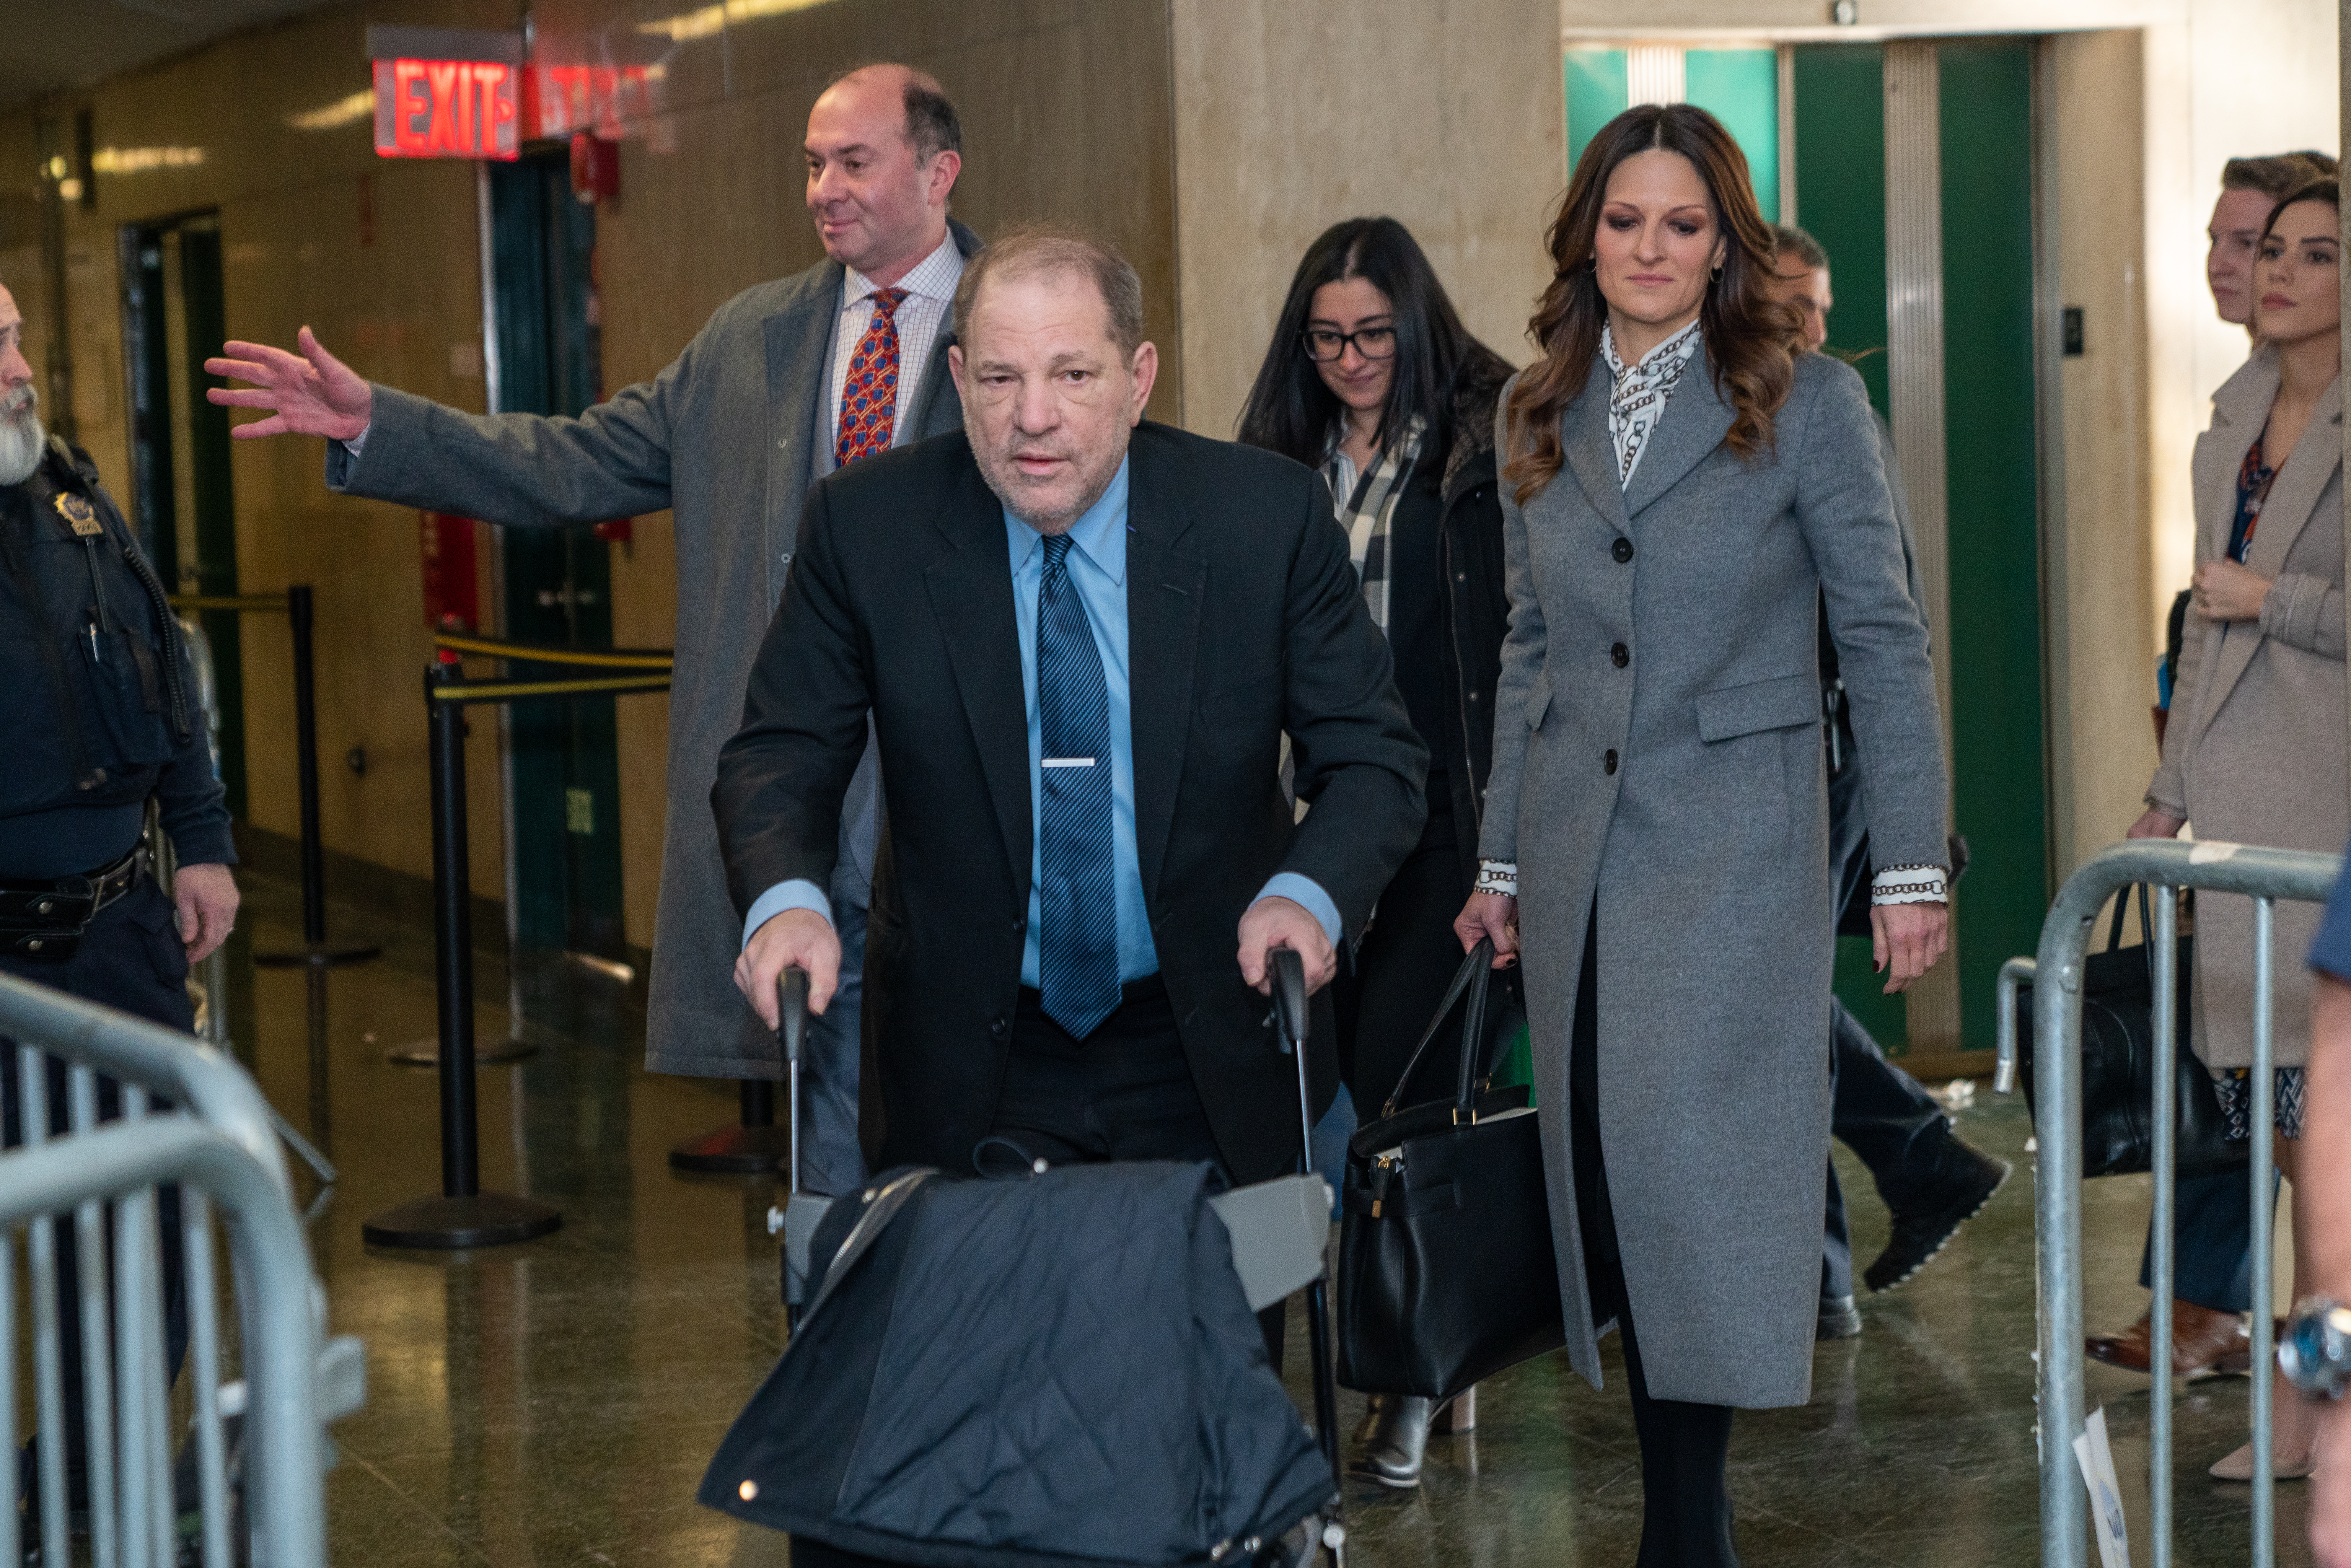 Harvey Weinstein arrives at Manhattan Criminal Court for his sexual assault trial on January 29, 2020 in New York City. Weinstein, whose alleged sexual misconduct helped spark the #MeToo movement, pleaded not-guilty on five counts of rape and sexual assault against two unnamed women and faces a possible life sentence in prison. (Photo by David Dee Delgado/Getty Images)